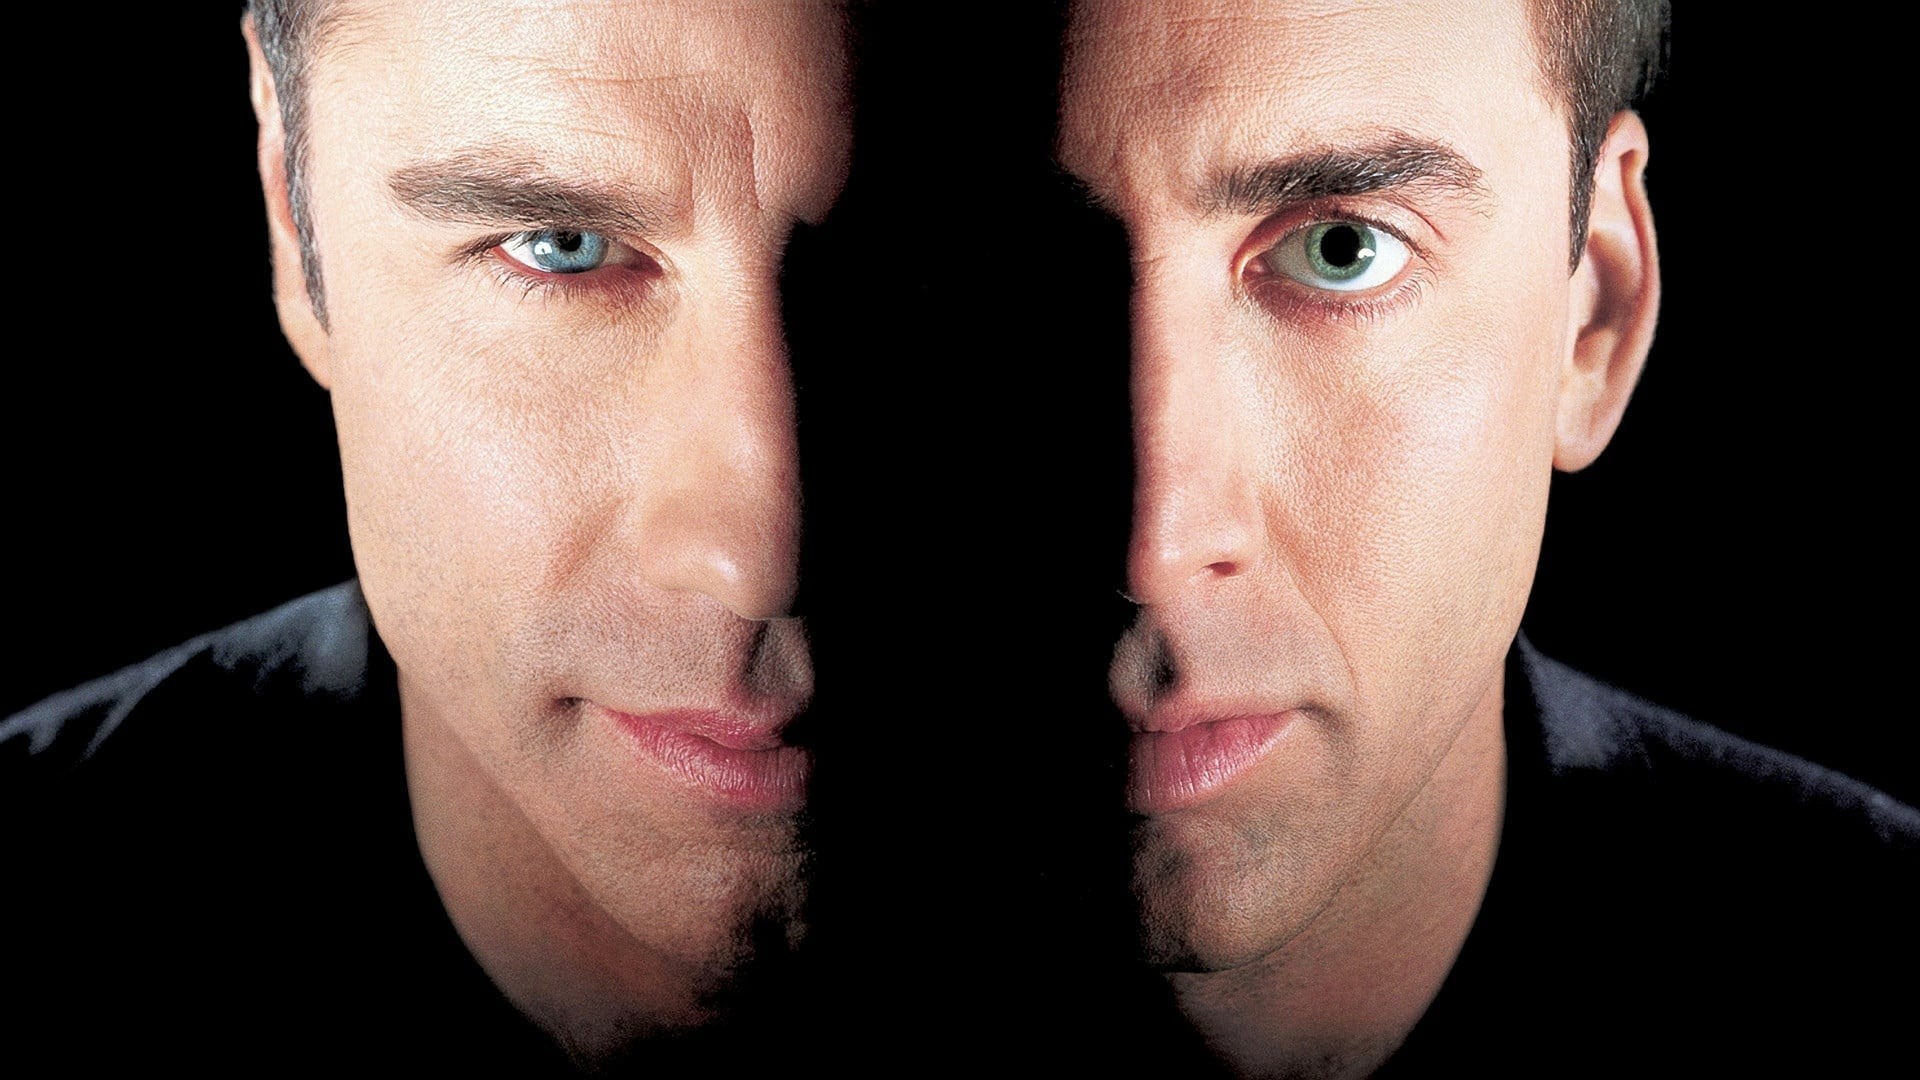 comPOSERS Episode 68: Face/Off